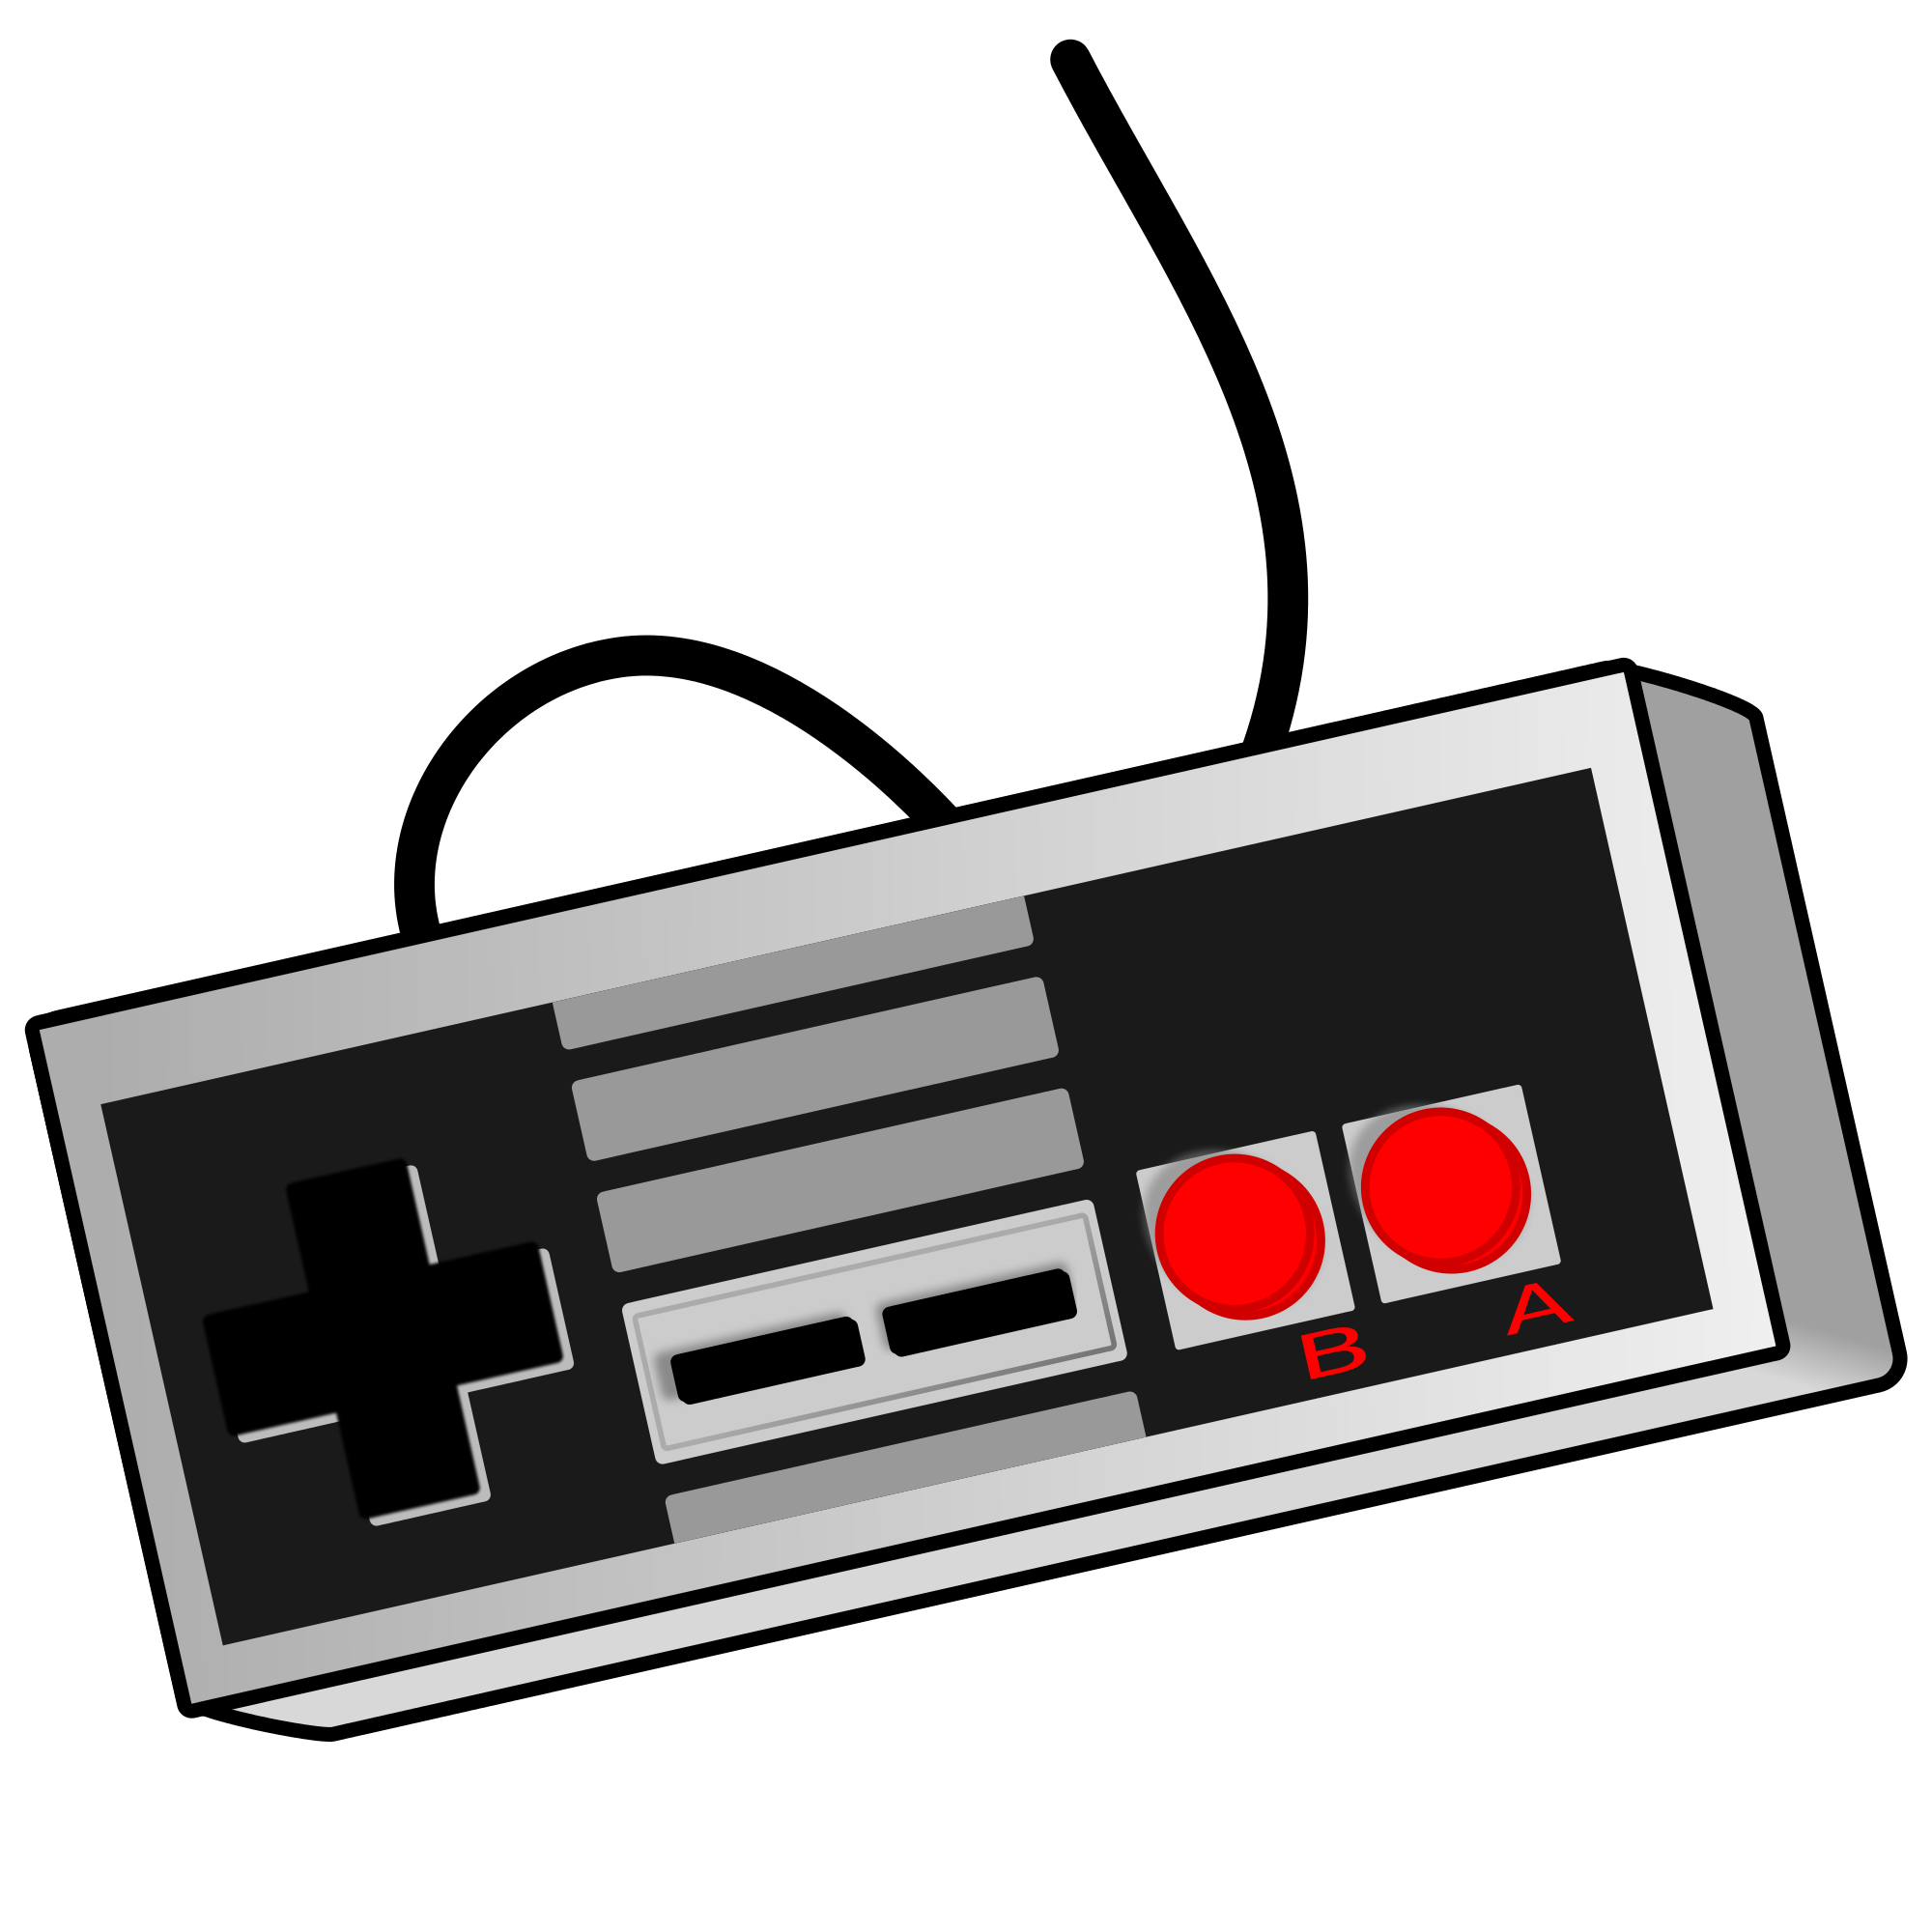 Computer clip art retro. File gamepad svg wikimedia